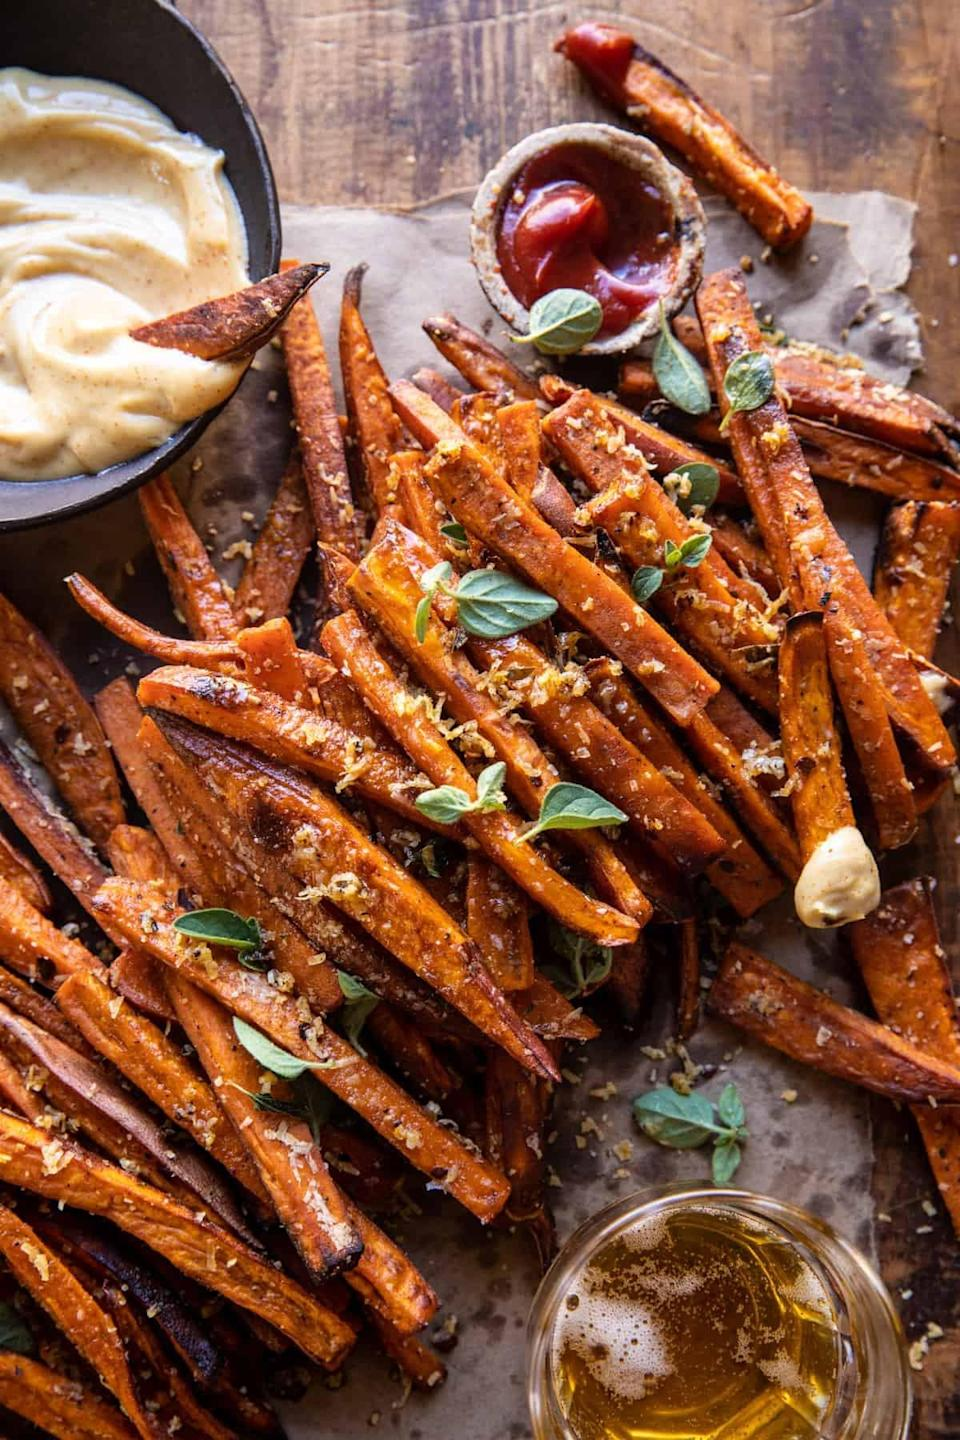 "<p>Make the most of sweet potatoes when you cook up these perfectly crunchy fries. Who can say no to warm potato slices with a rich and spicy aioli, anyway? Since this recipe makes six servings, you can cut it in half and enjoy enough fries for two people, and then some.</p> <p><strong>Get the recipe:</strong> <a href=""https://www.halfbakedharvest.com/garlic-parmesan-sweet-potato-fries/"" class=""link rapid-noclick-resp"" rel=""nofollow noopener"" target=""_blank"" data-ylk=""slk:garlic parmesan sweet potato fries with spicy aioli"">garlic parmesan sweet potato fries with spicy aioli</a></p>"